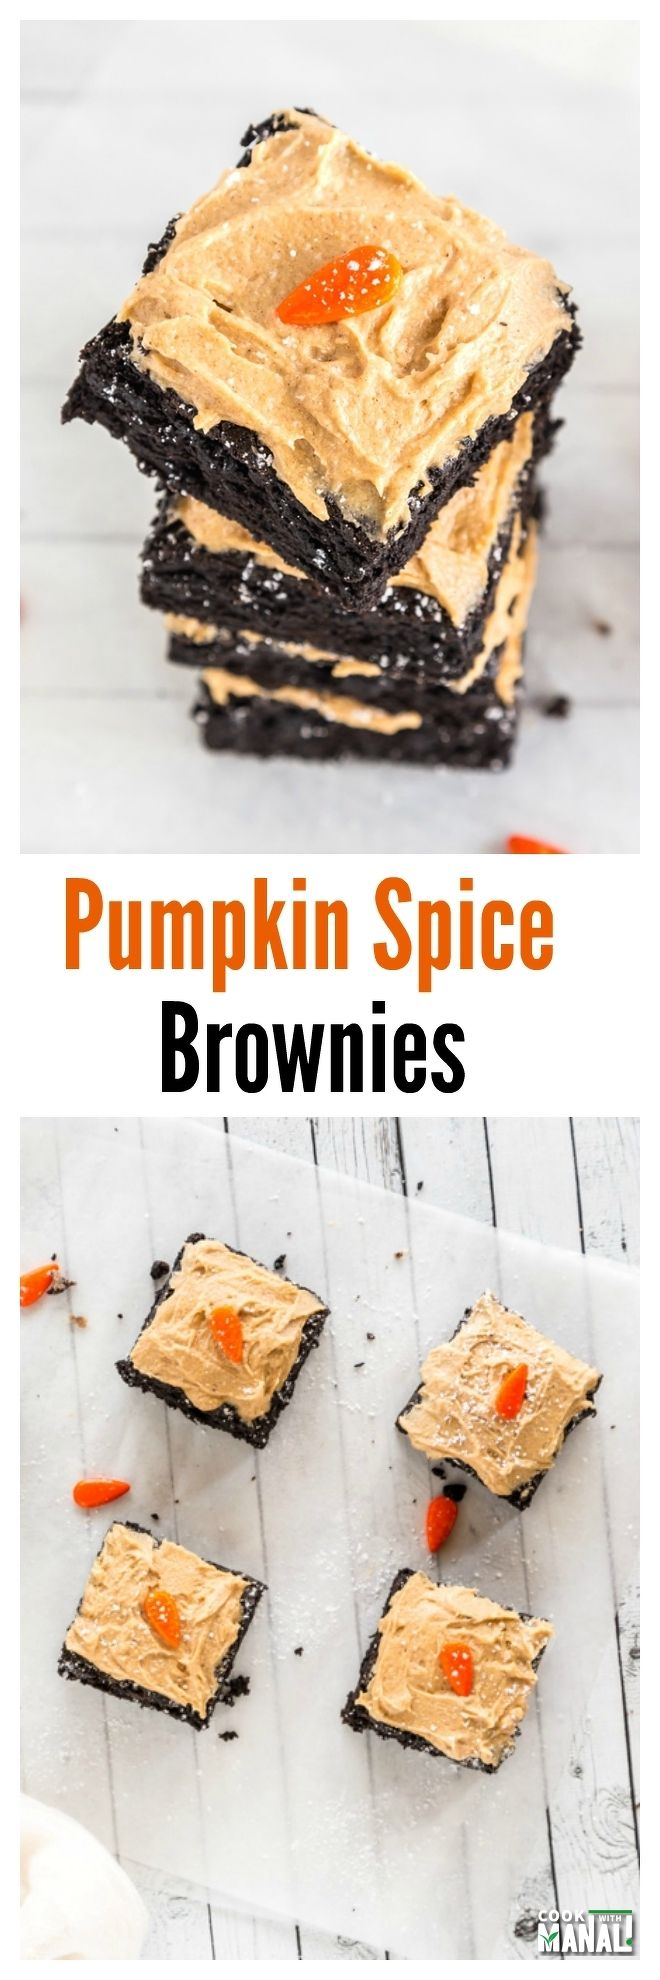 Pumpkin Spice Brownies Collage